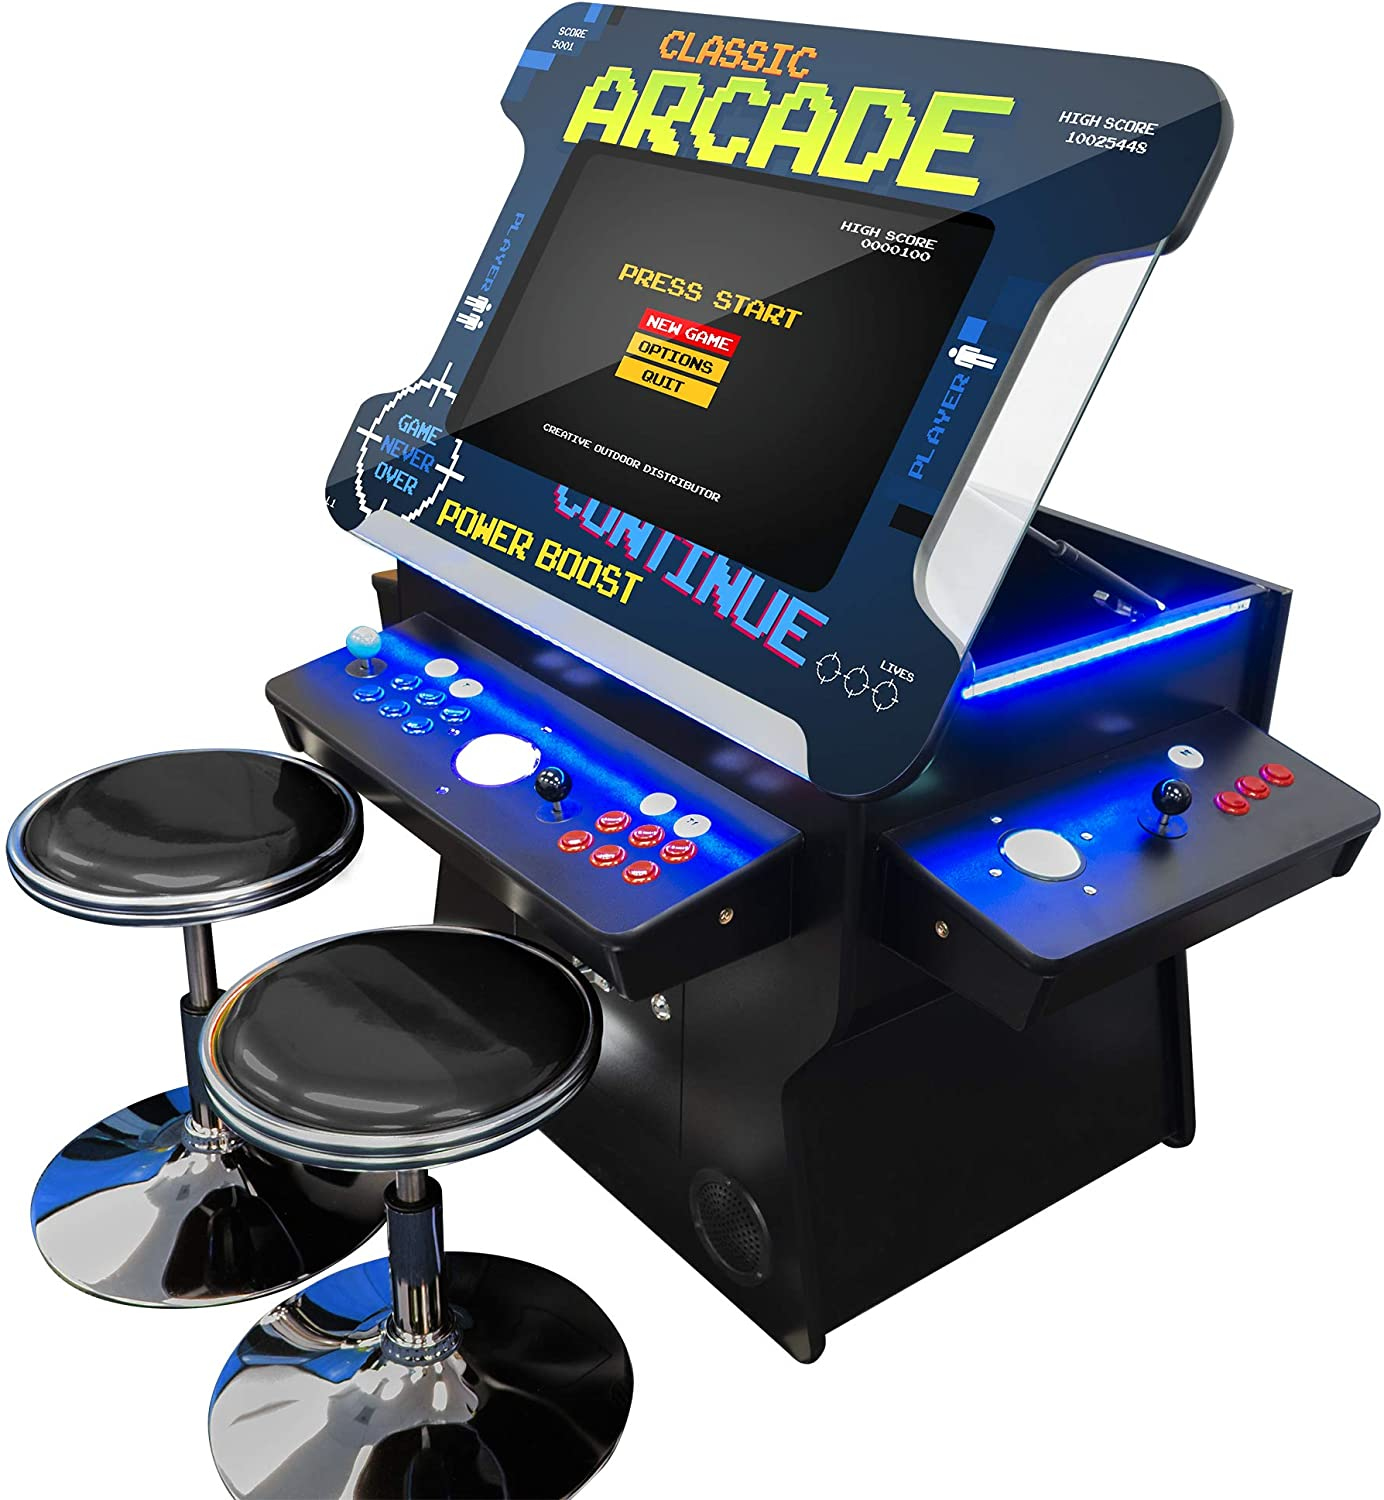 Creative Arcades Full Size Commercial Grade Cocktail Arcade Machine | Trackball | Three-Sided | 1162 Classic Games | 4 Sanwa Joysticks | 2 Stools Included | 3 Year Warranty | 26 Lifting Screen